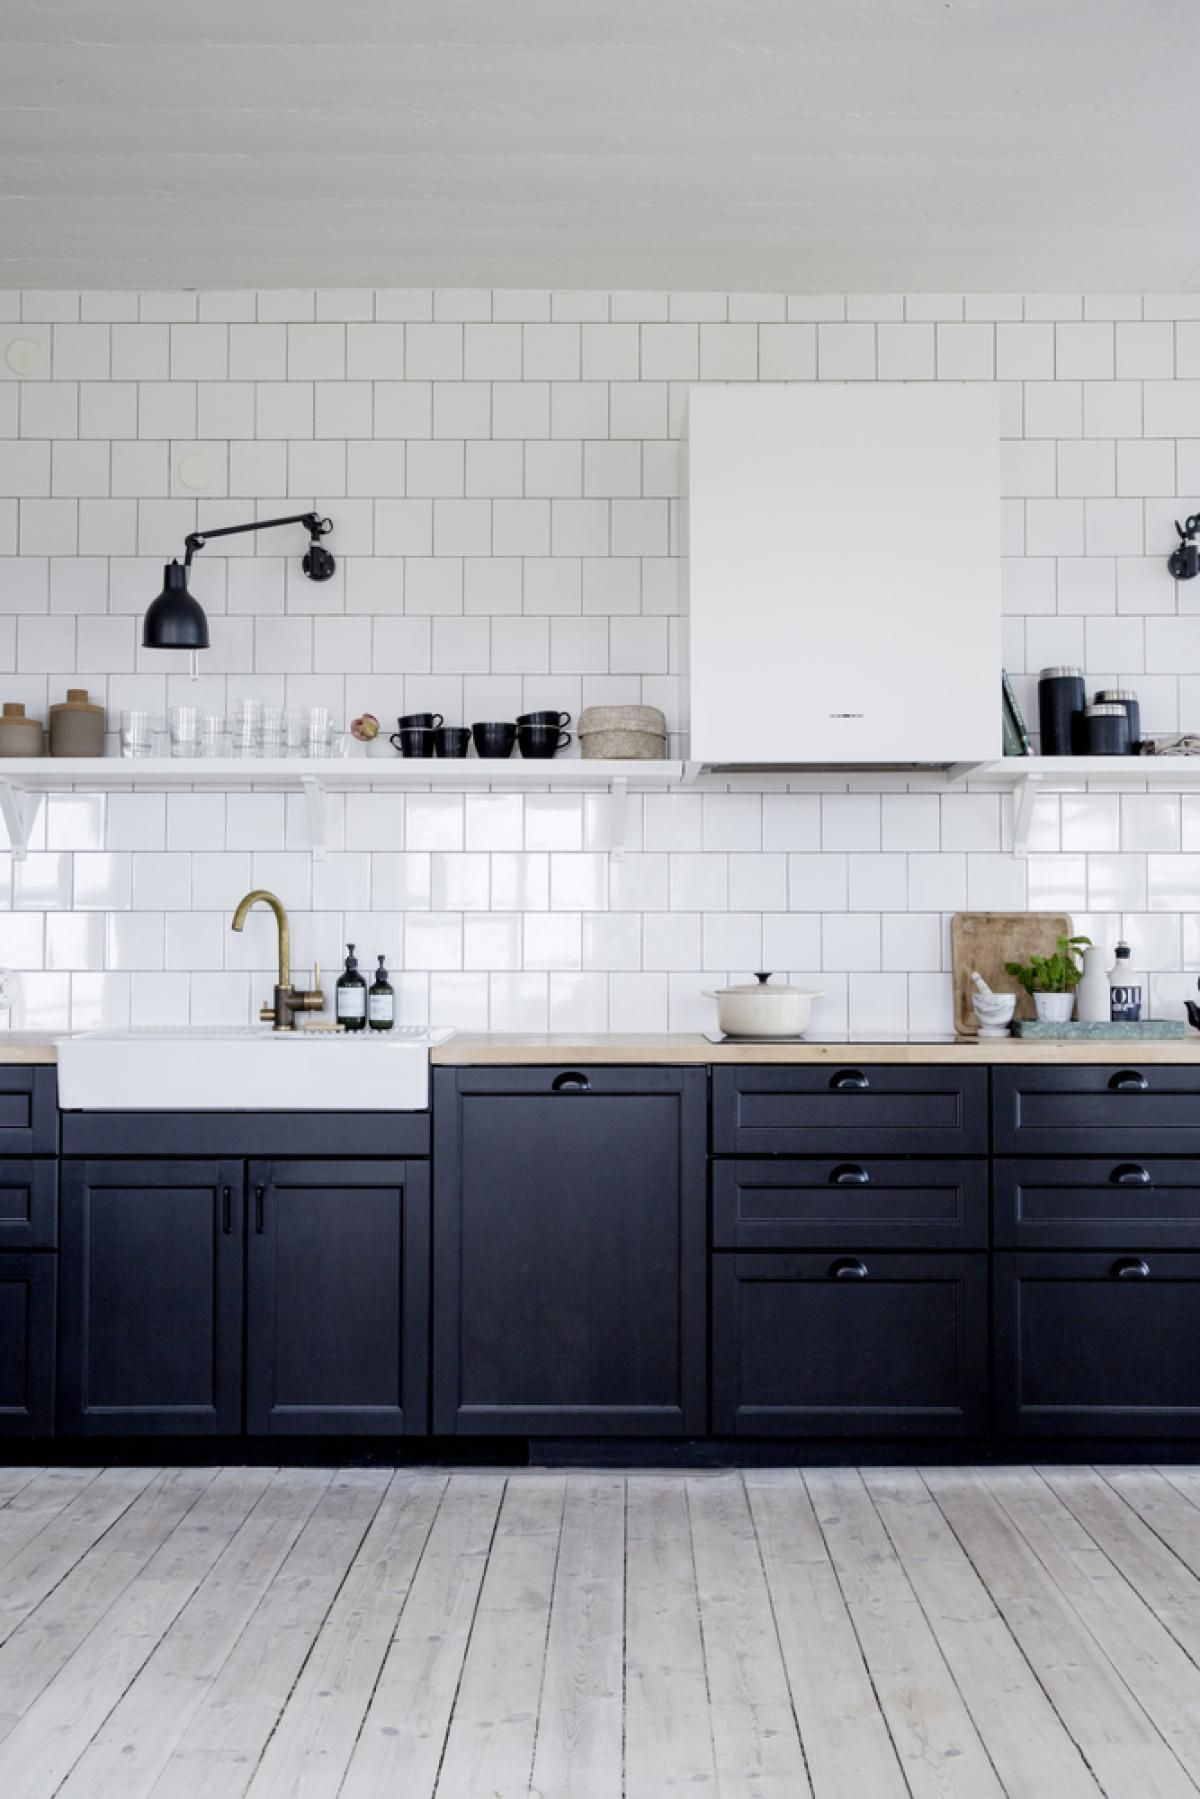 Black And White Summerhouse Kitchen  Via Coco Lapine Design Blog Adorable Kitchen Design Blog Decorating Inspiration